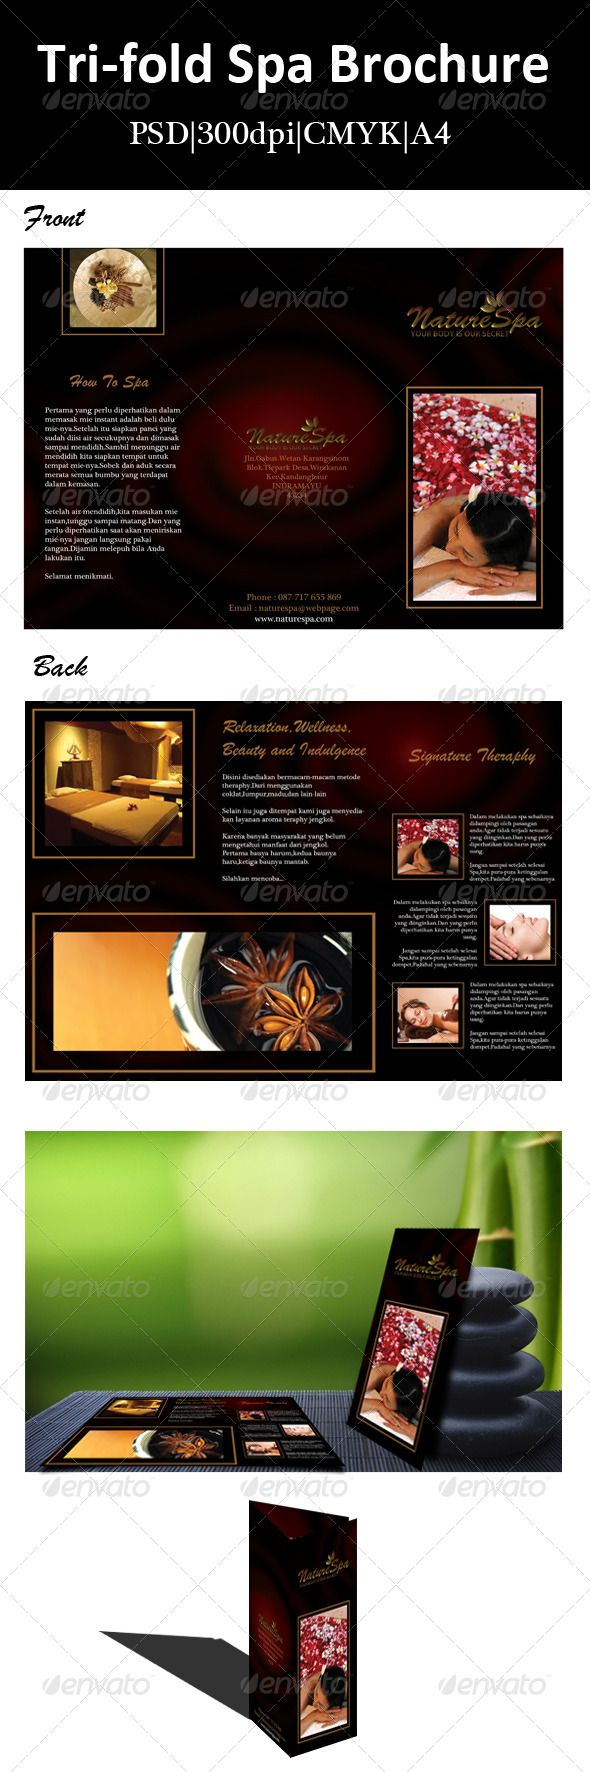 Best Spa Brochure Layout Images On   Brochure Layout